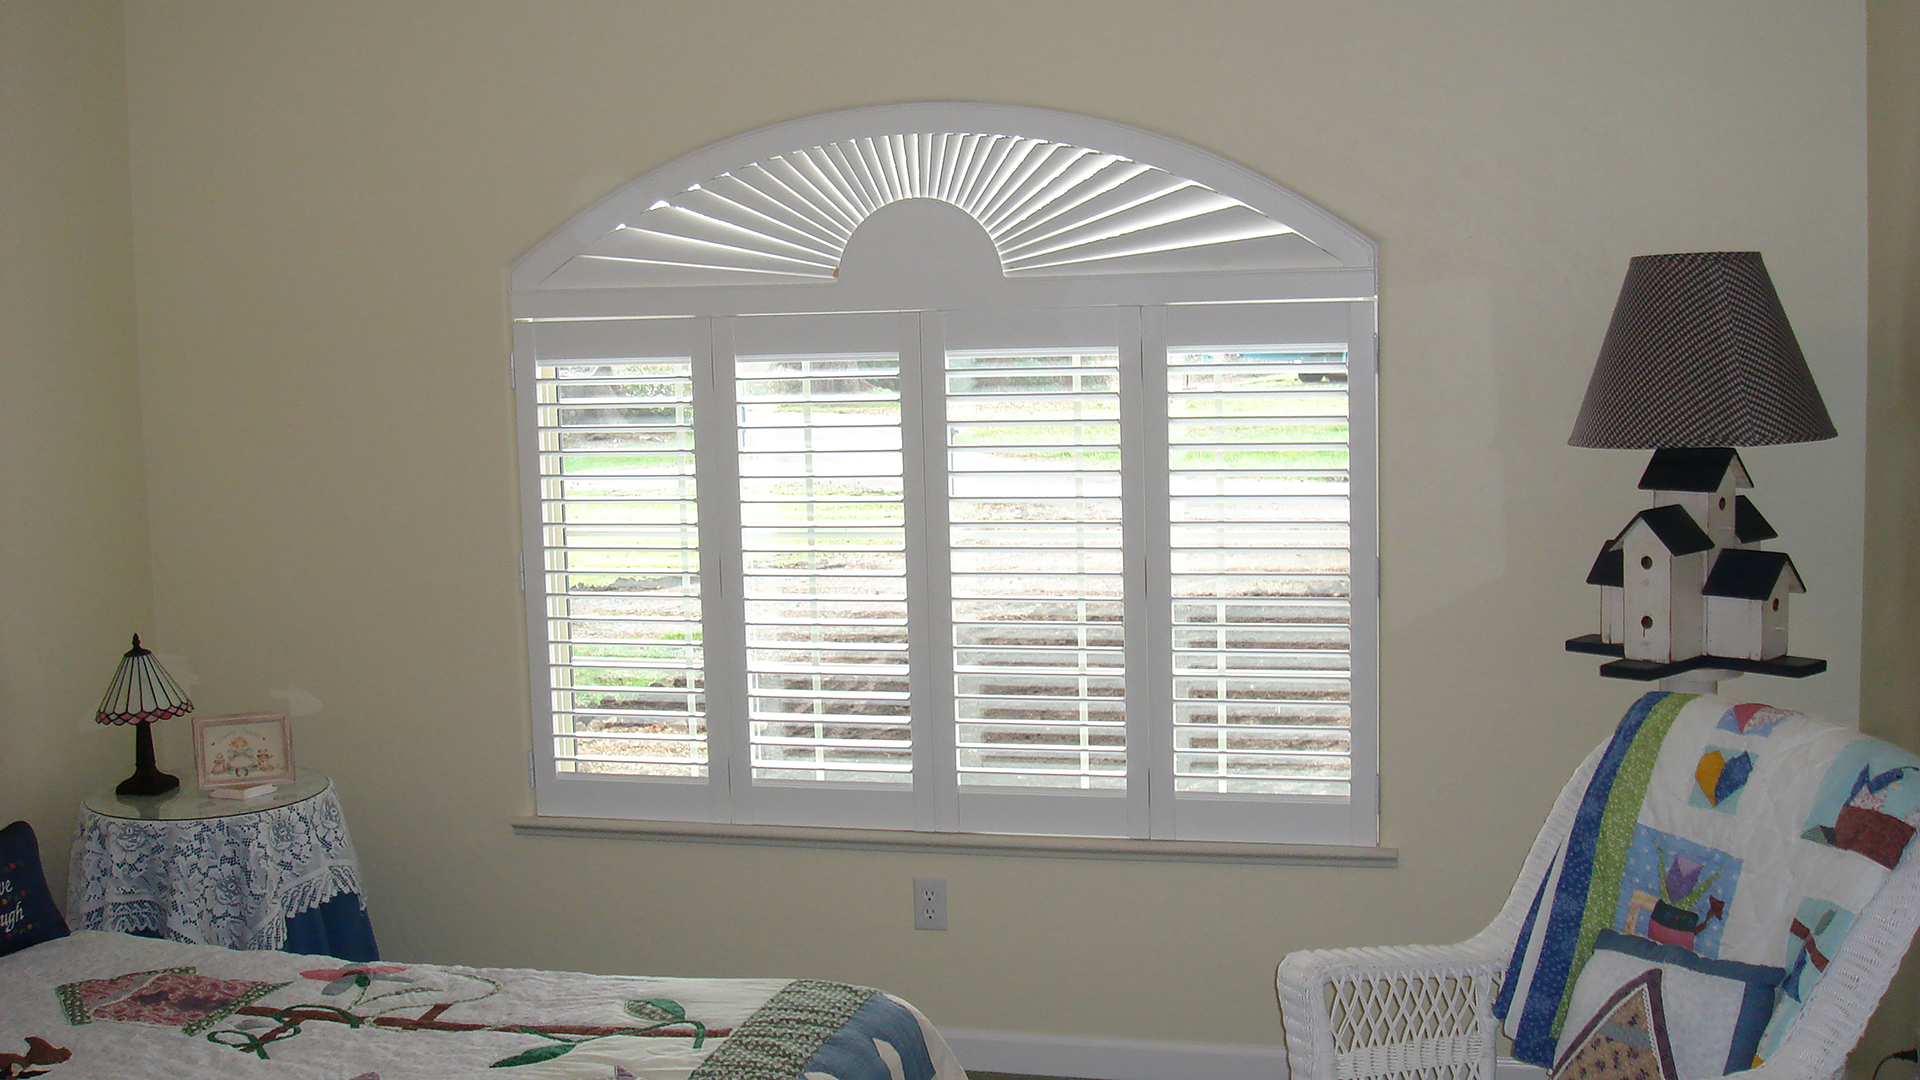 Composite Arch Shutter over Composite Shutters Interior.jpg